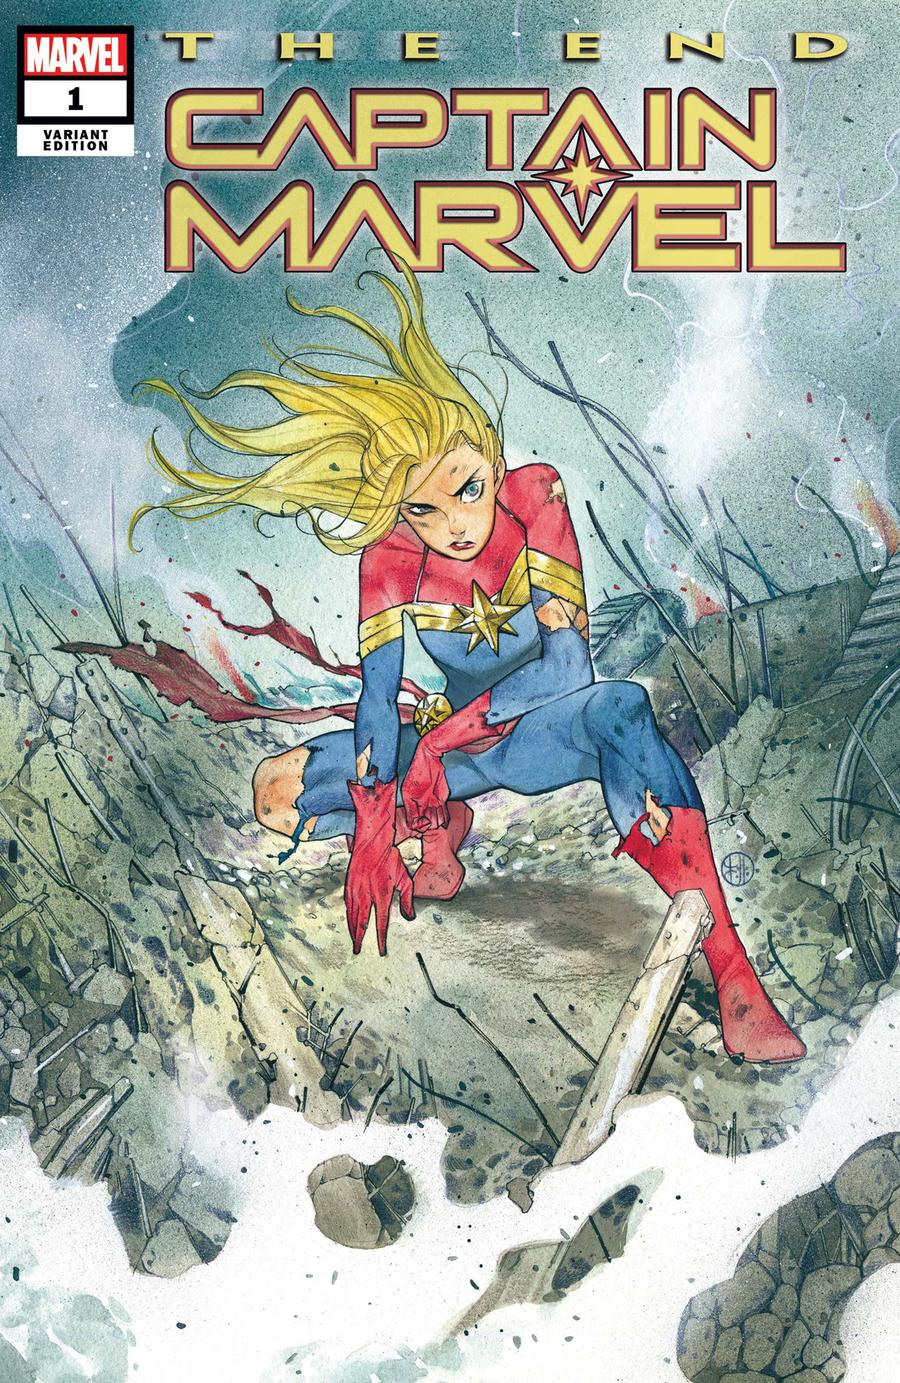 Captain Marvel The End One Shot Cover B Variant Peach Momoko Cover